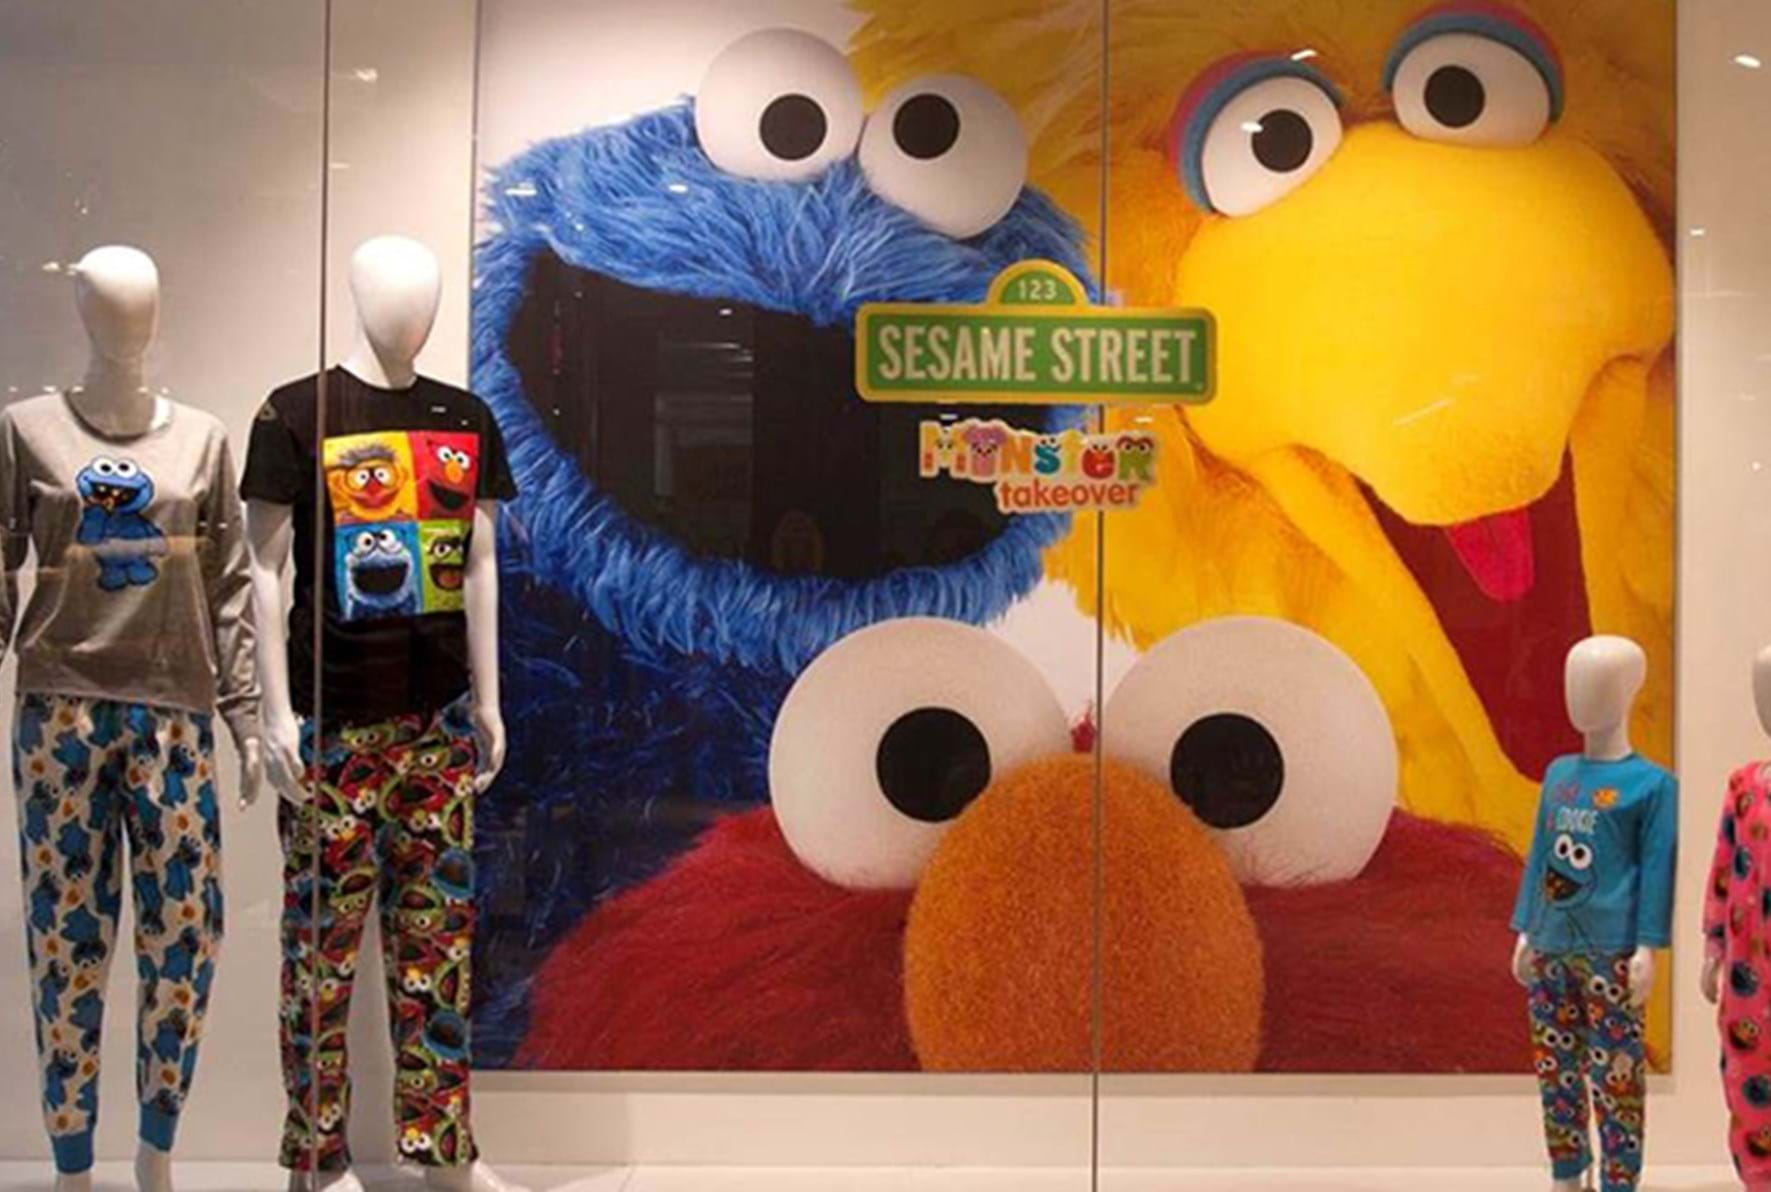 Sesame Street @ Best & Less